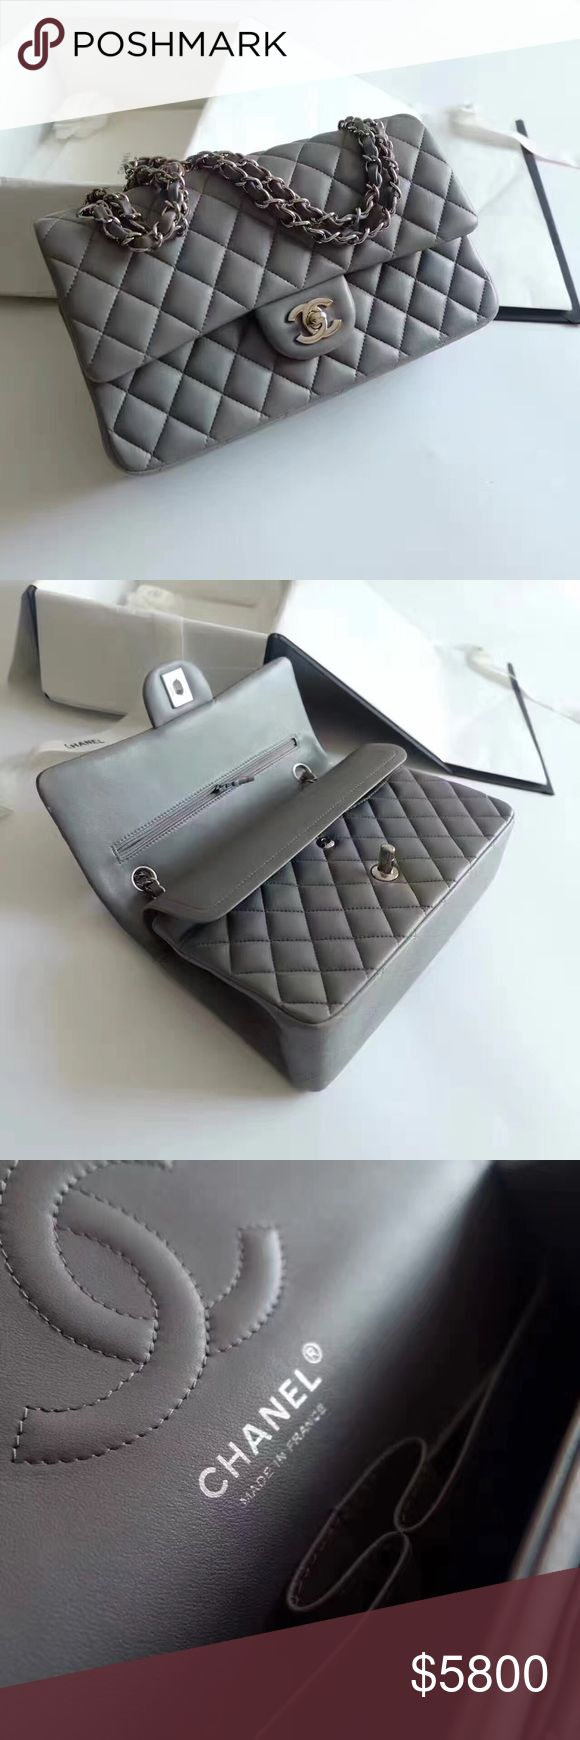 Chanel Classic Double Flap (Grey) Authentic Chanel Double Flap in Medium Size. Color: Grey with silver hardware. Excellent Condition. Comes with original packaging includes dustbag and box. ️️ CHANEL Bags Shoulder Bags